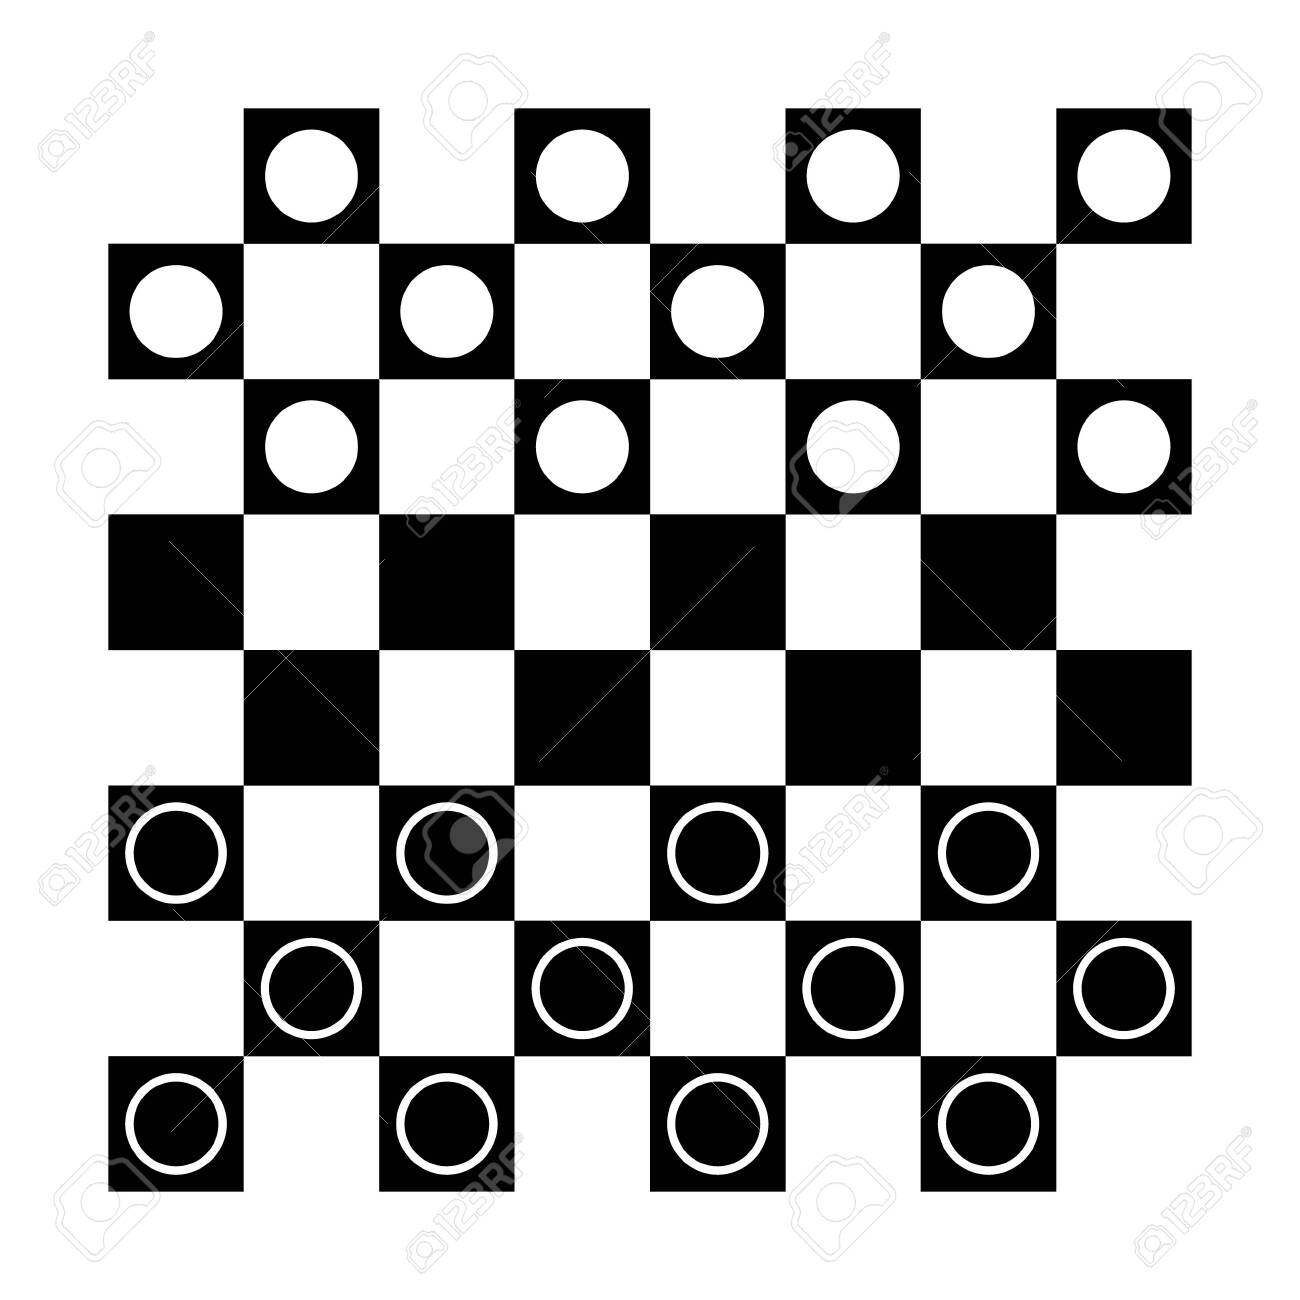 Checkers / Draughts